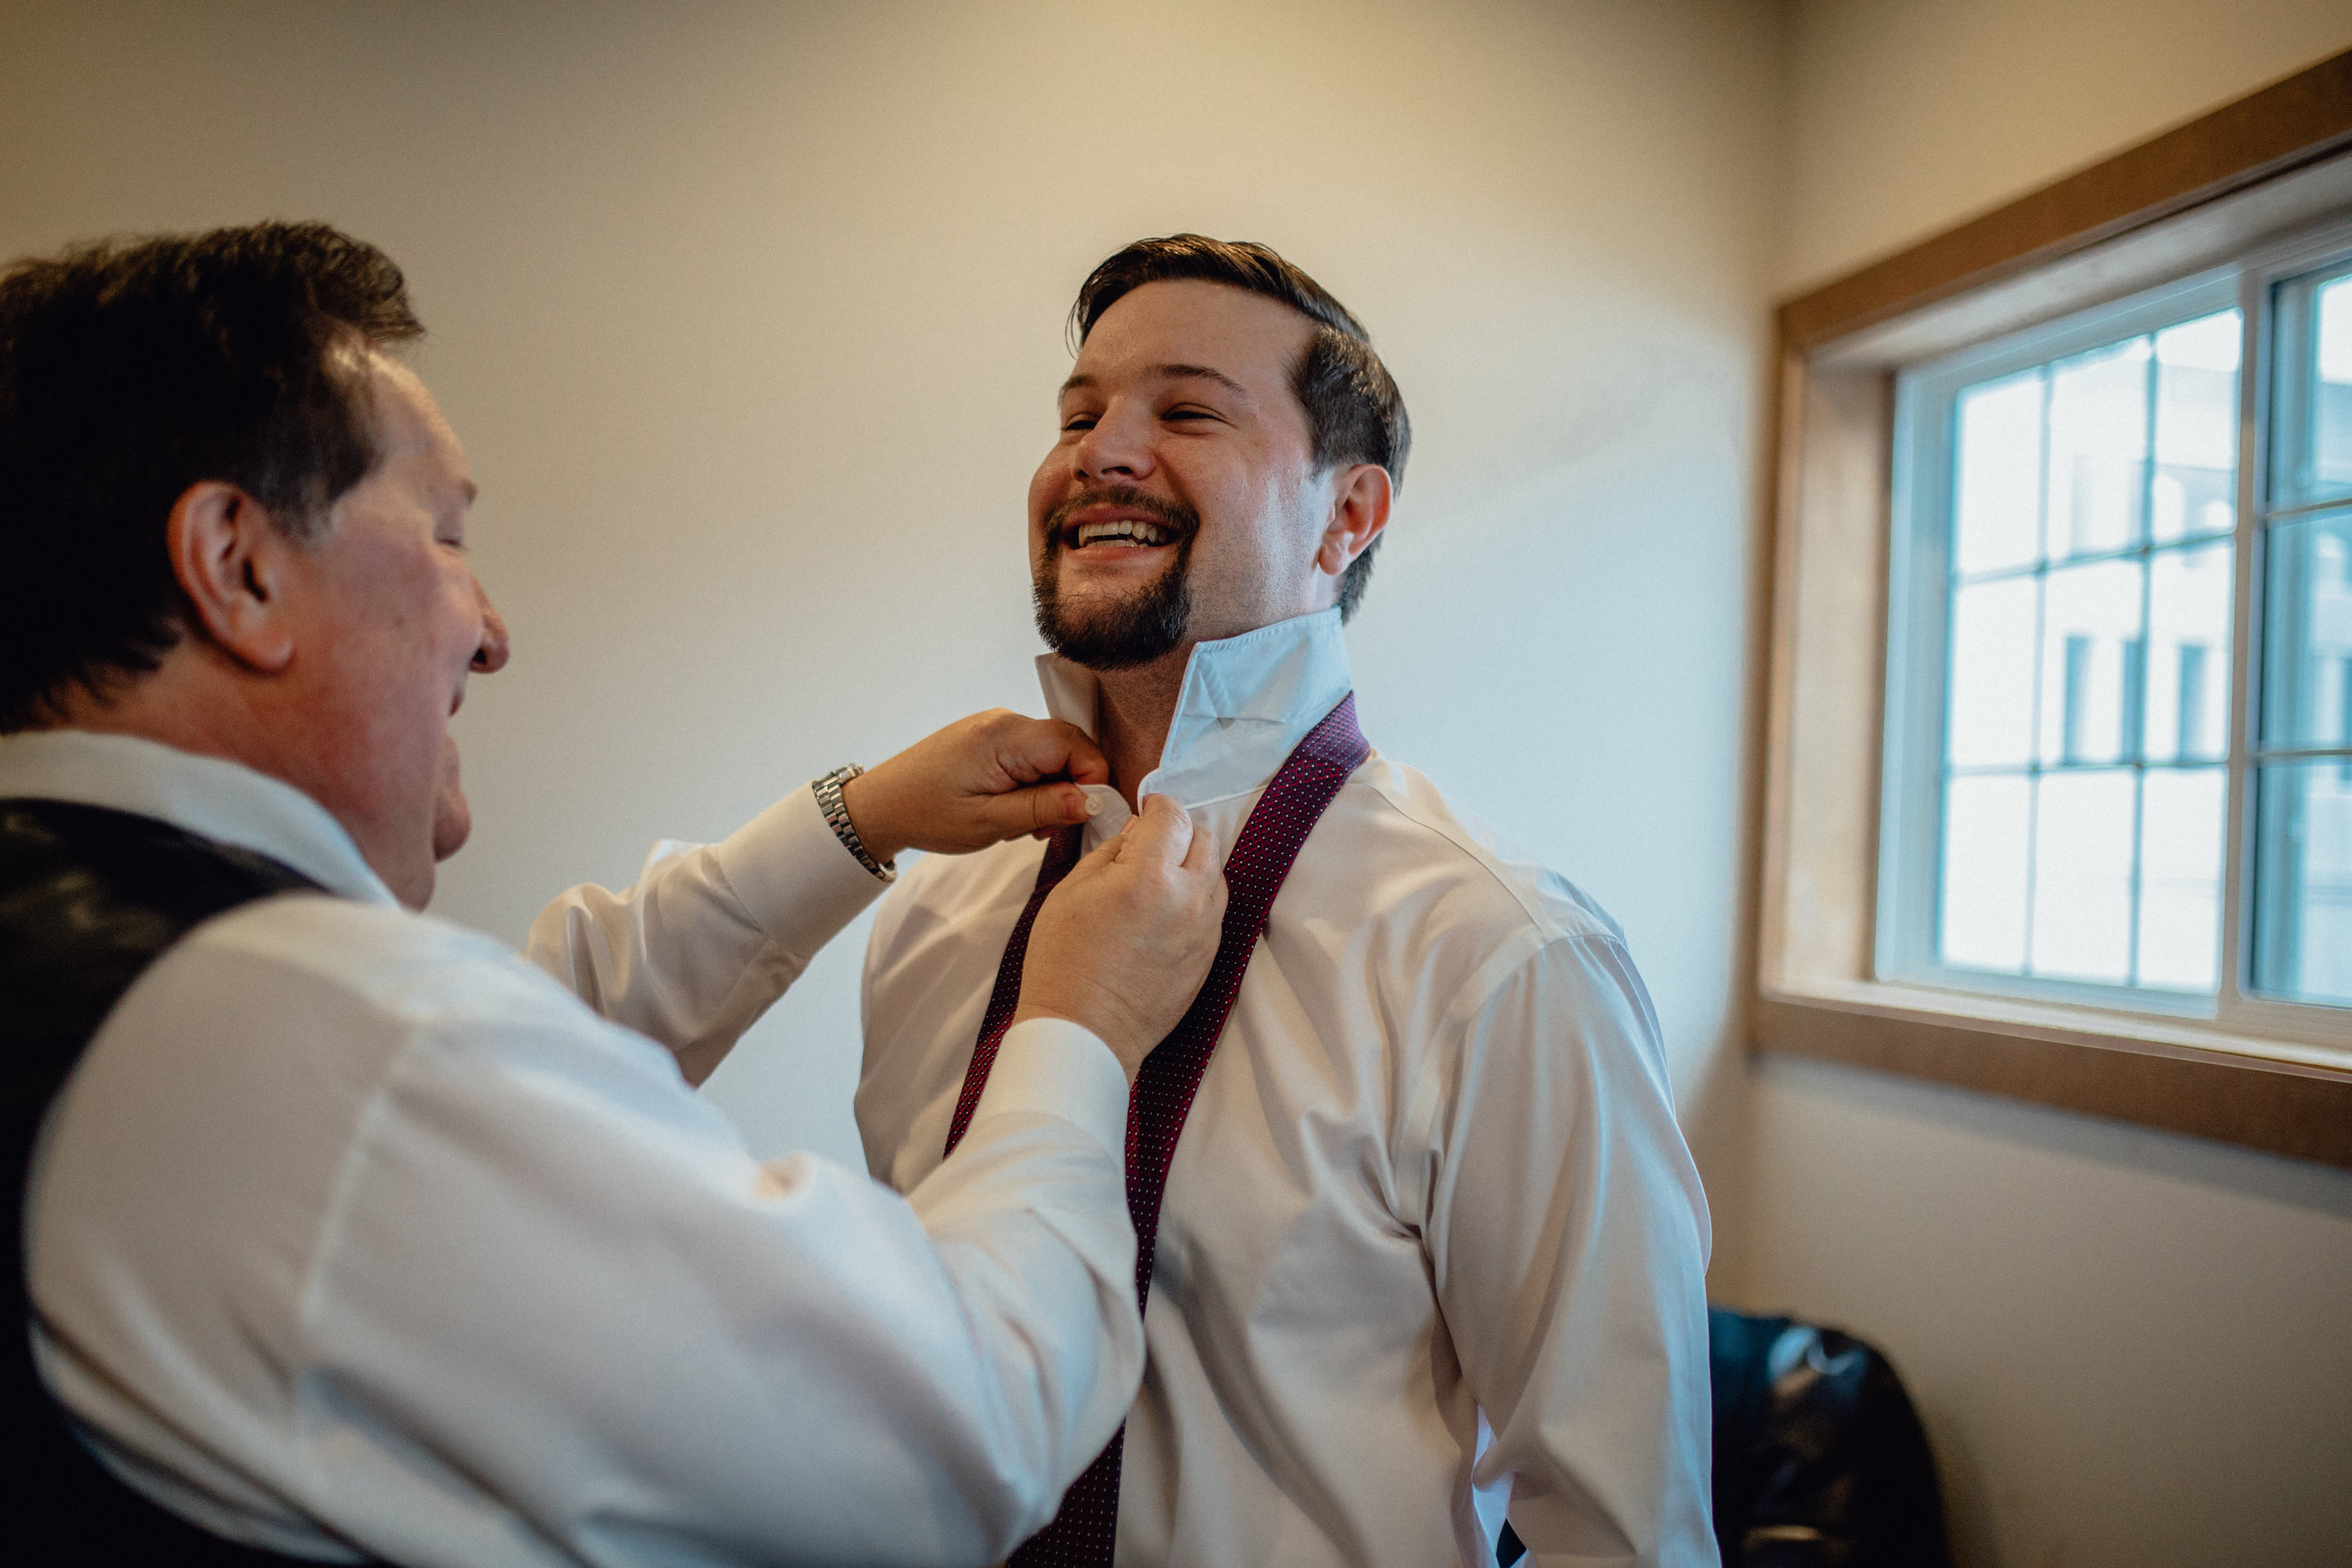 groom-putting-on-tie.jpg